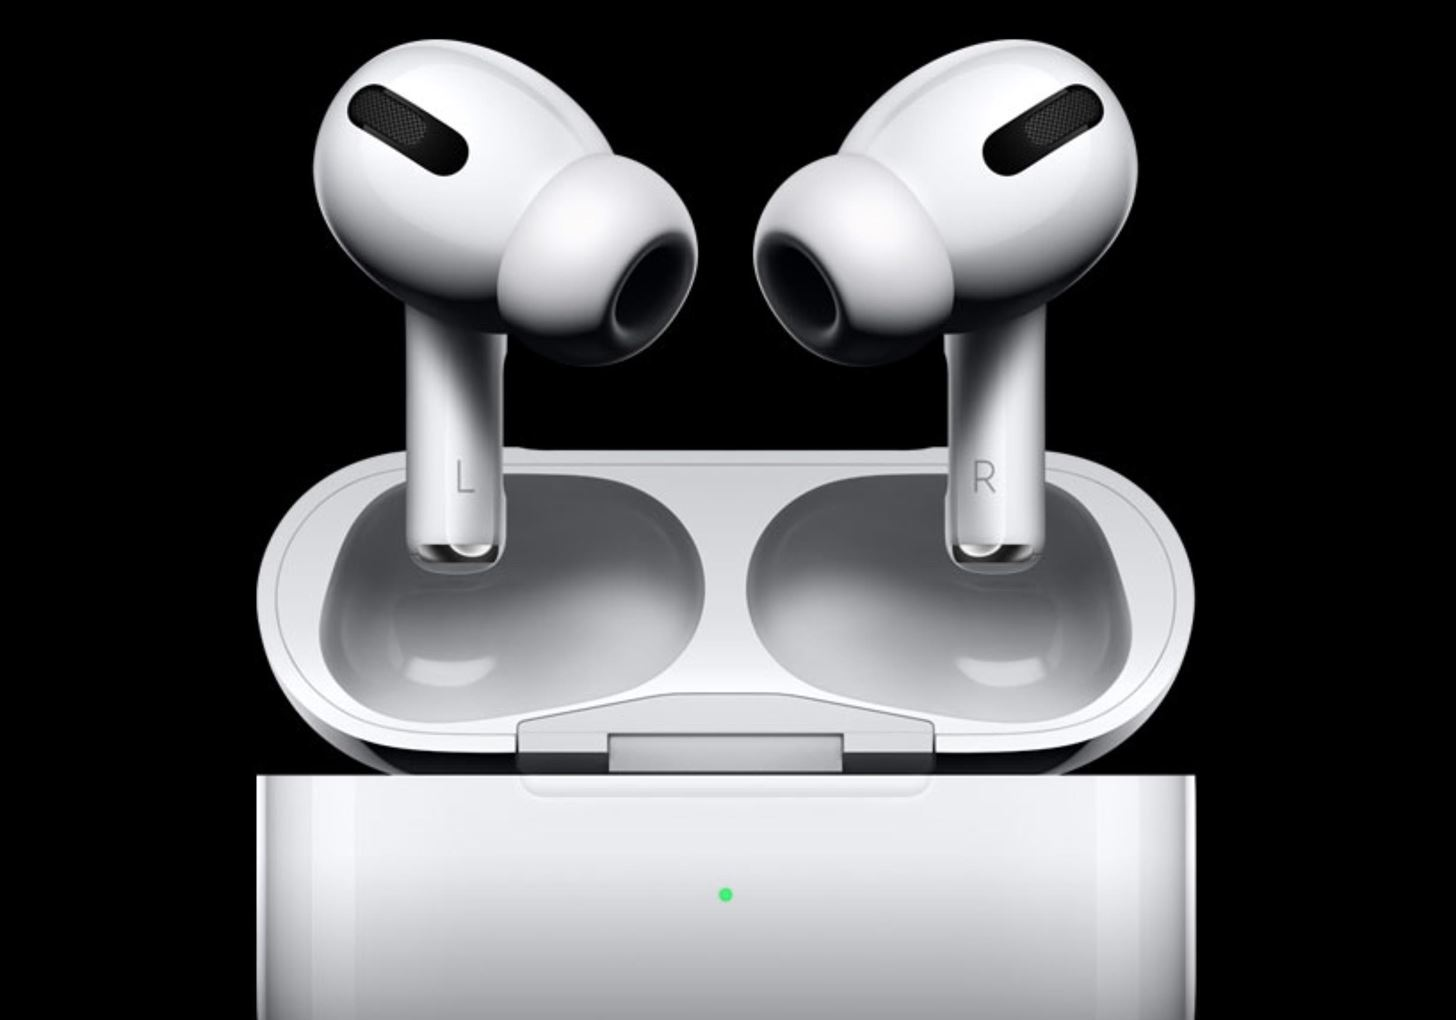 Apple AirPods Deals for Black Friday Going on Right Now & Coming Up